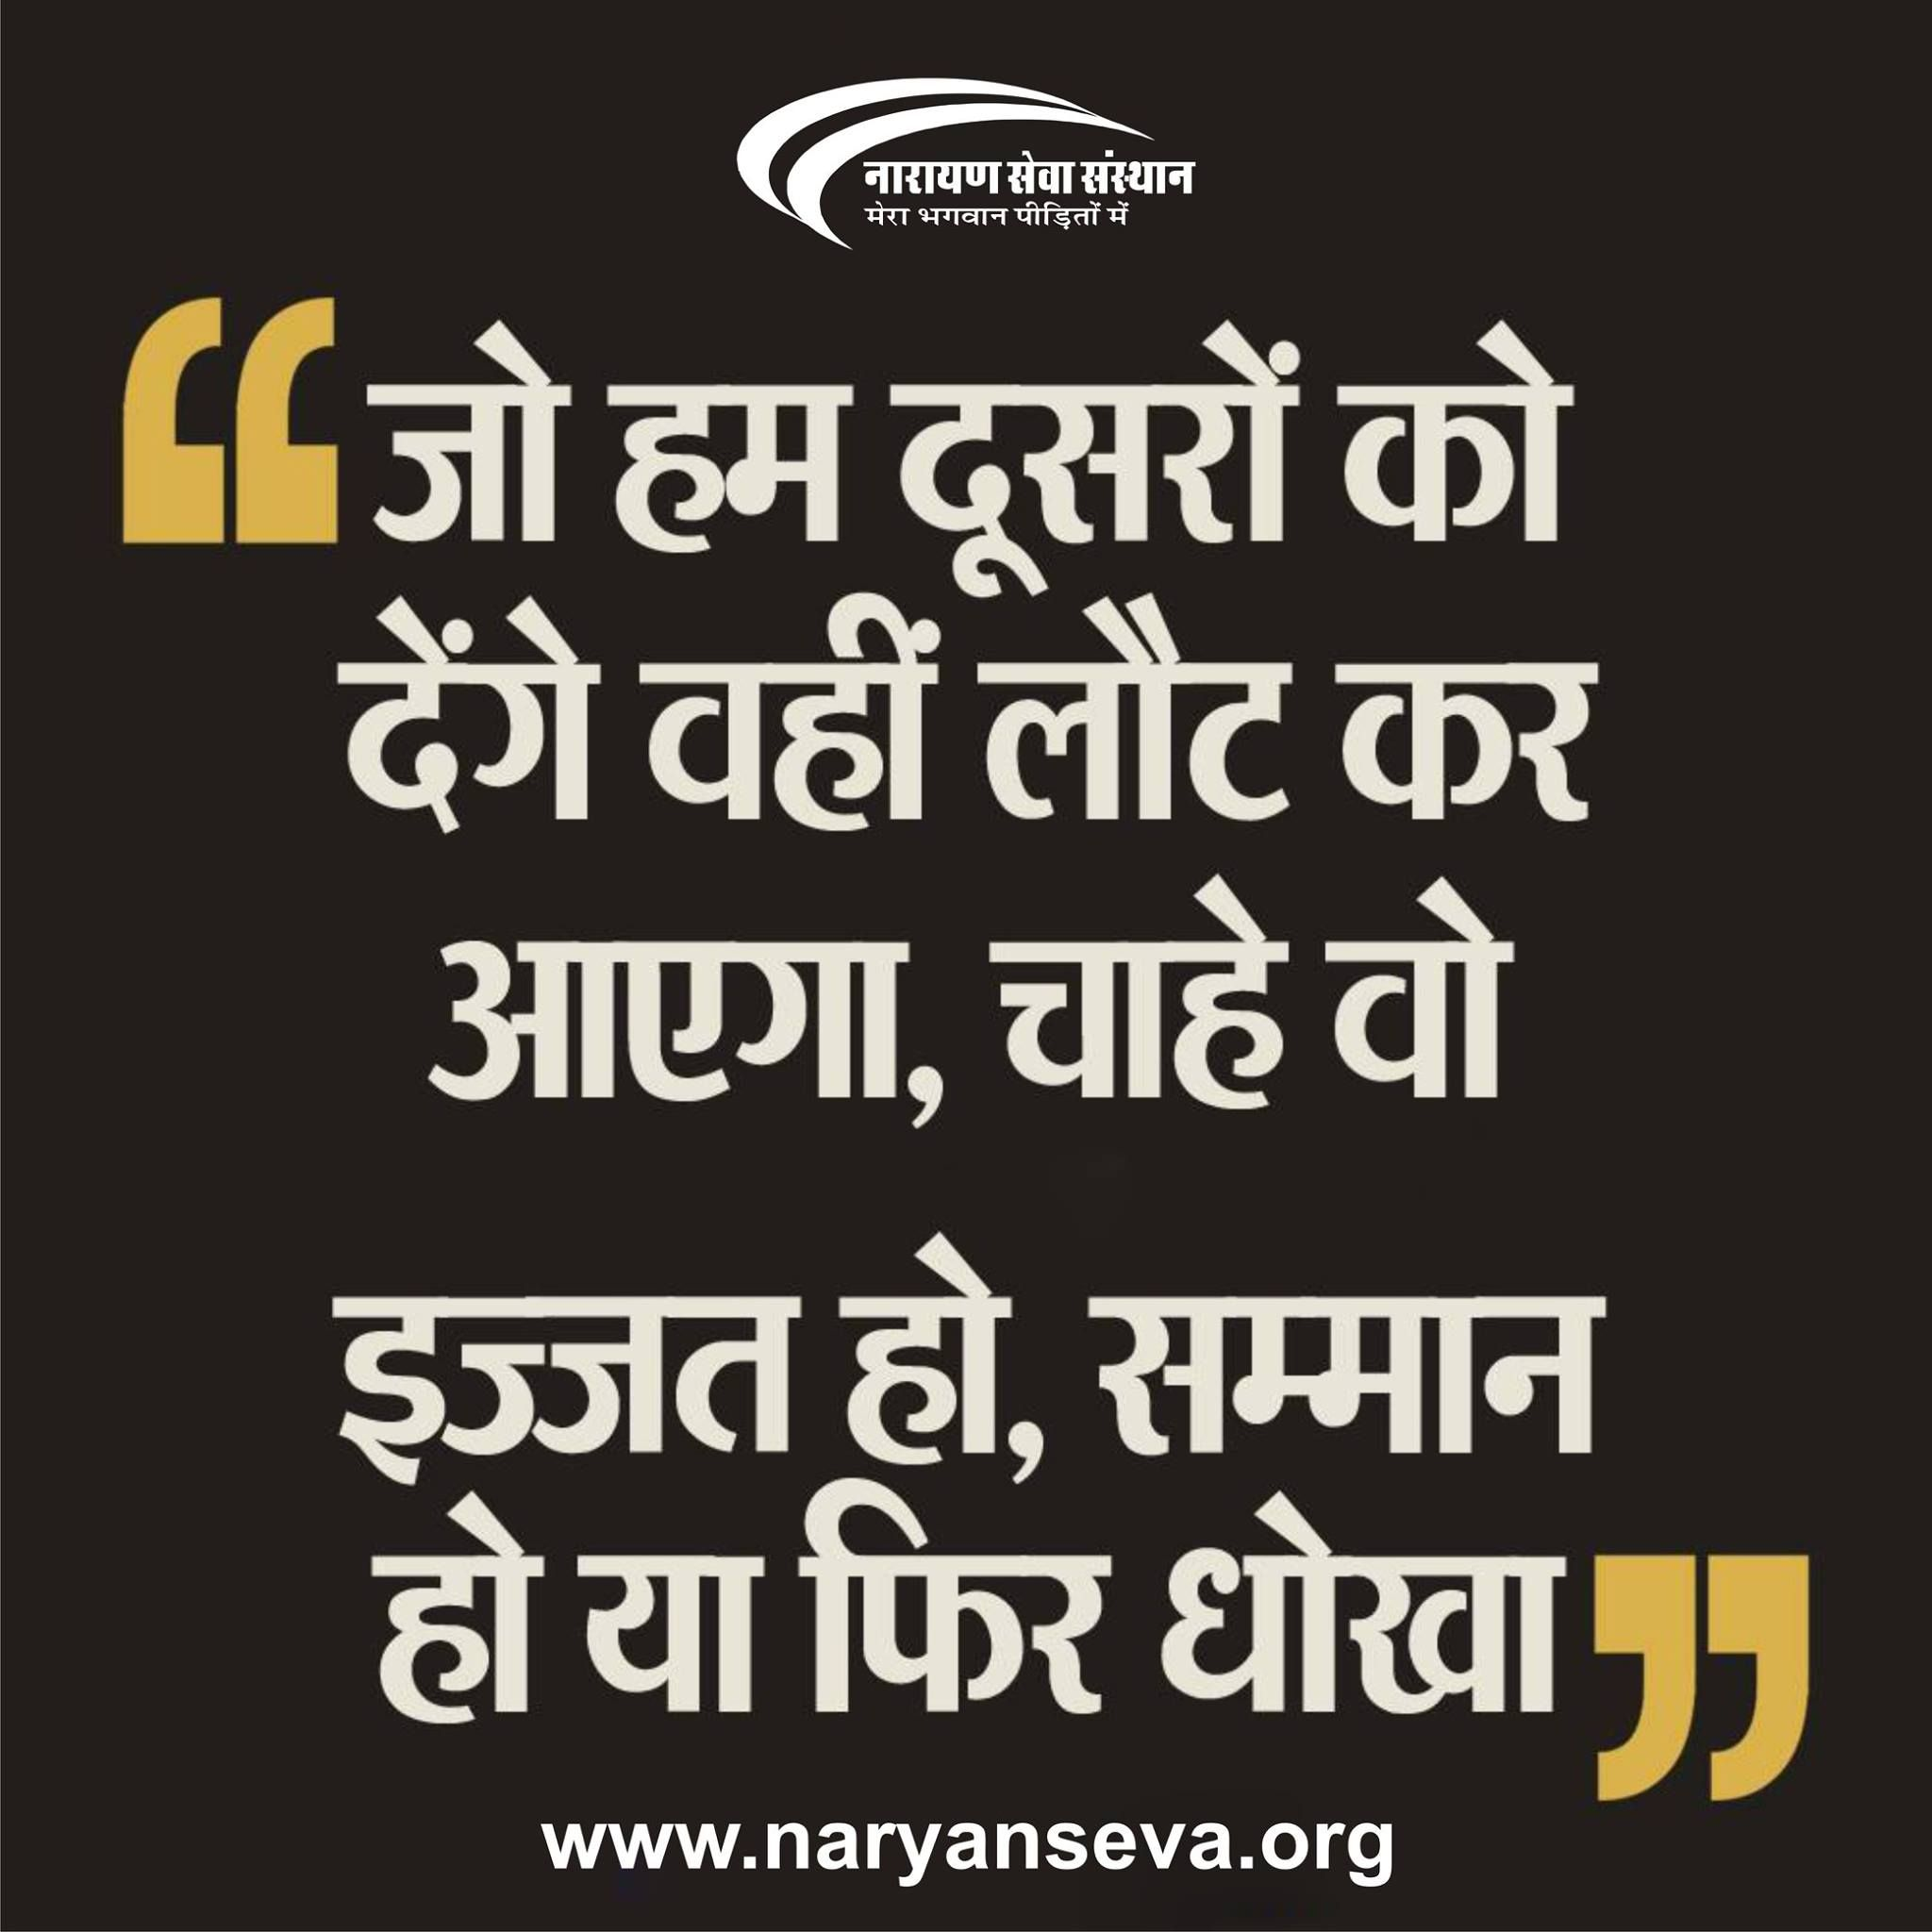 Dailyquote Quoteoftheday Motivational Quote Inspirationalquote Goodmorning Http Www Narayansev Chanakya Quotes Hindi Quotes On Life Motivatinal Quotes